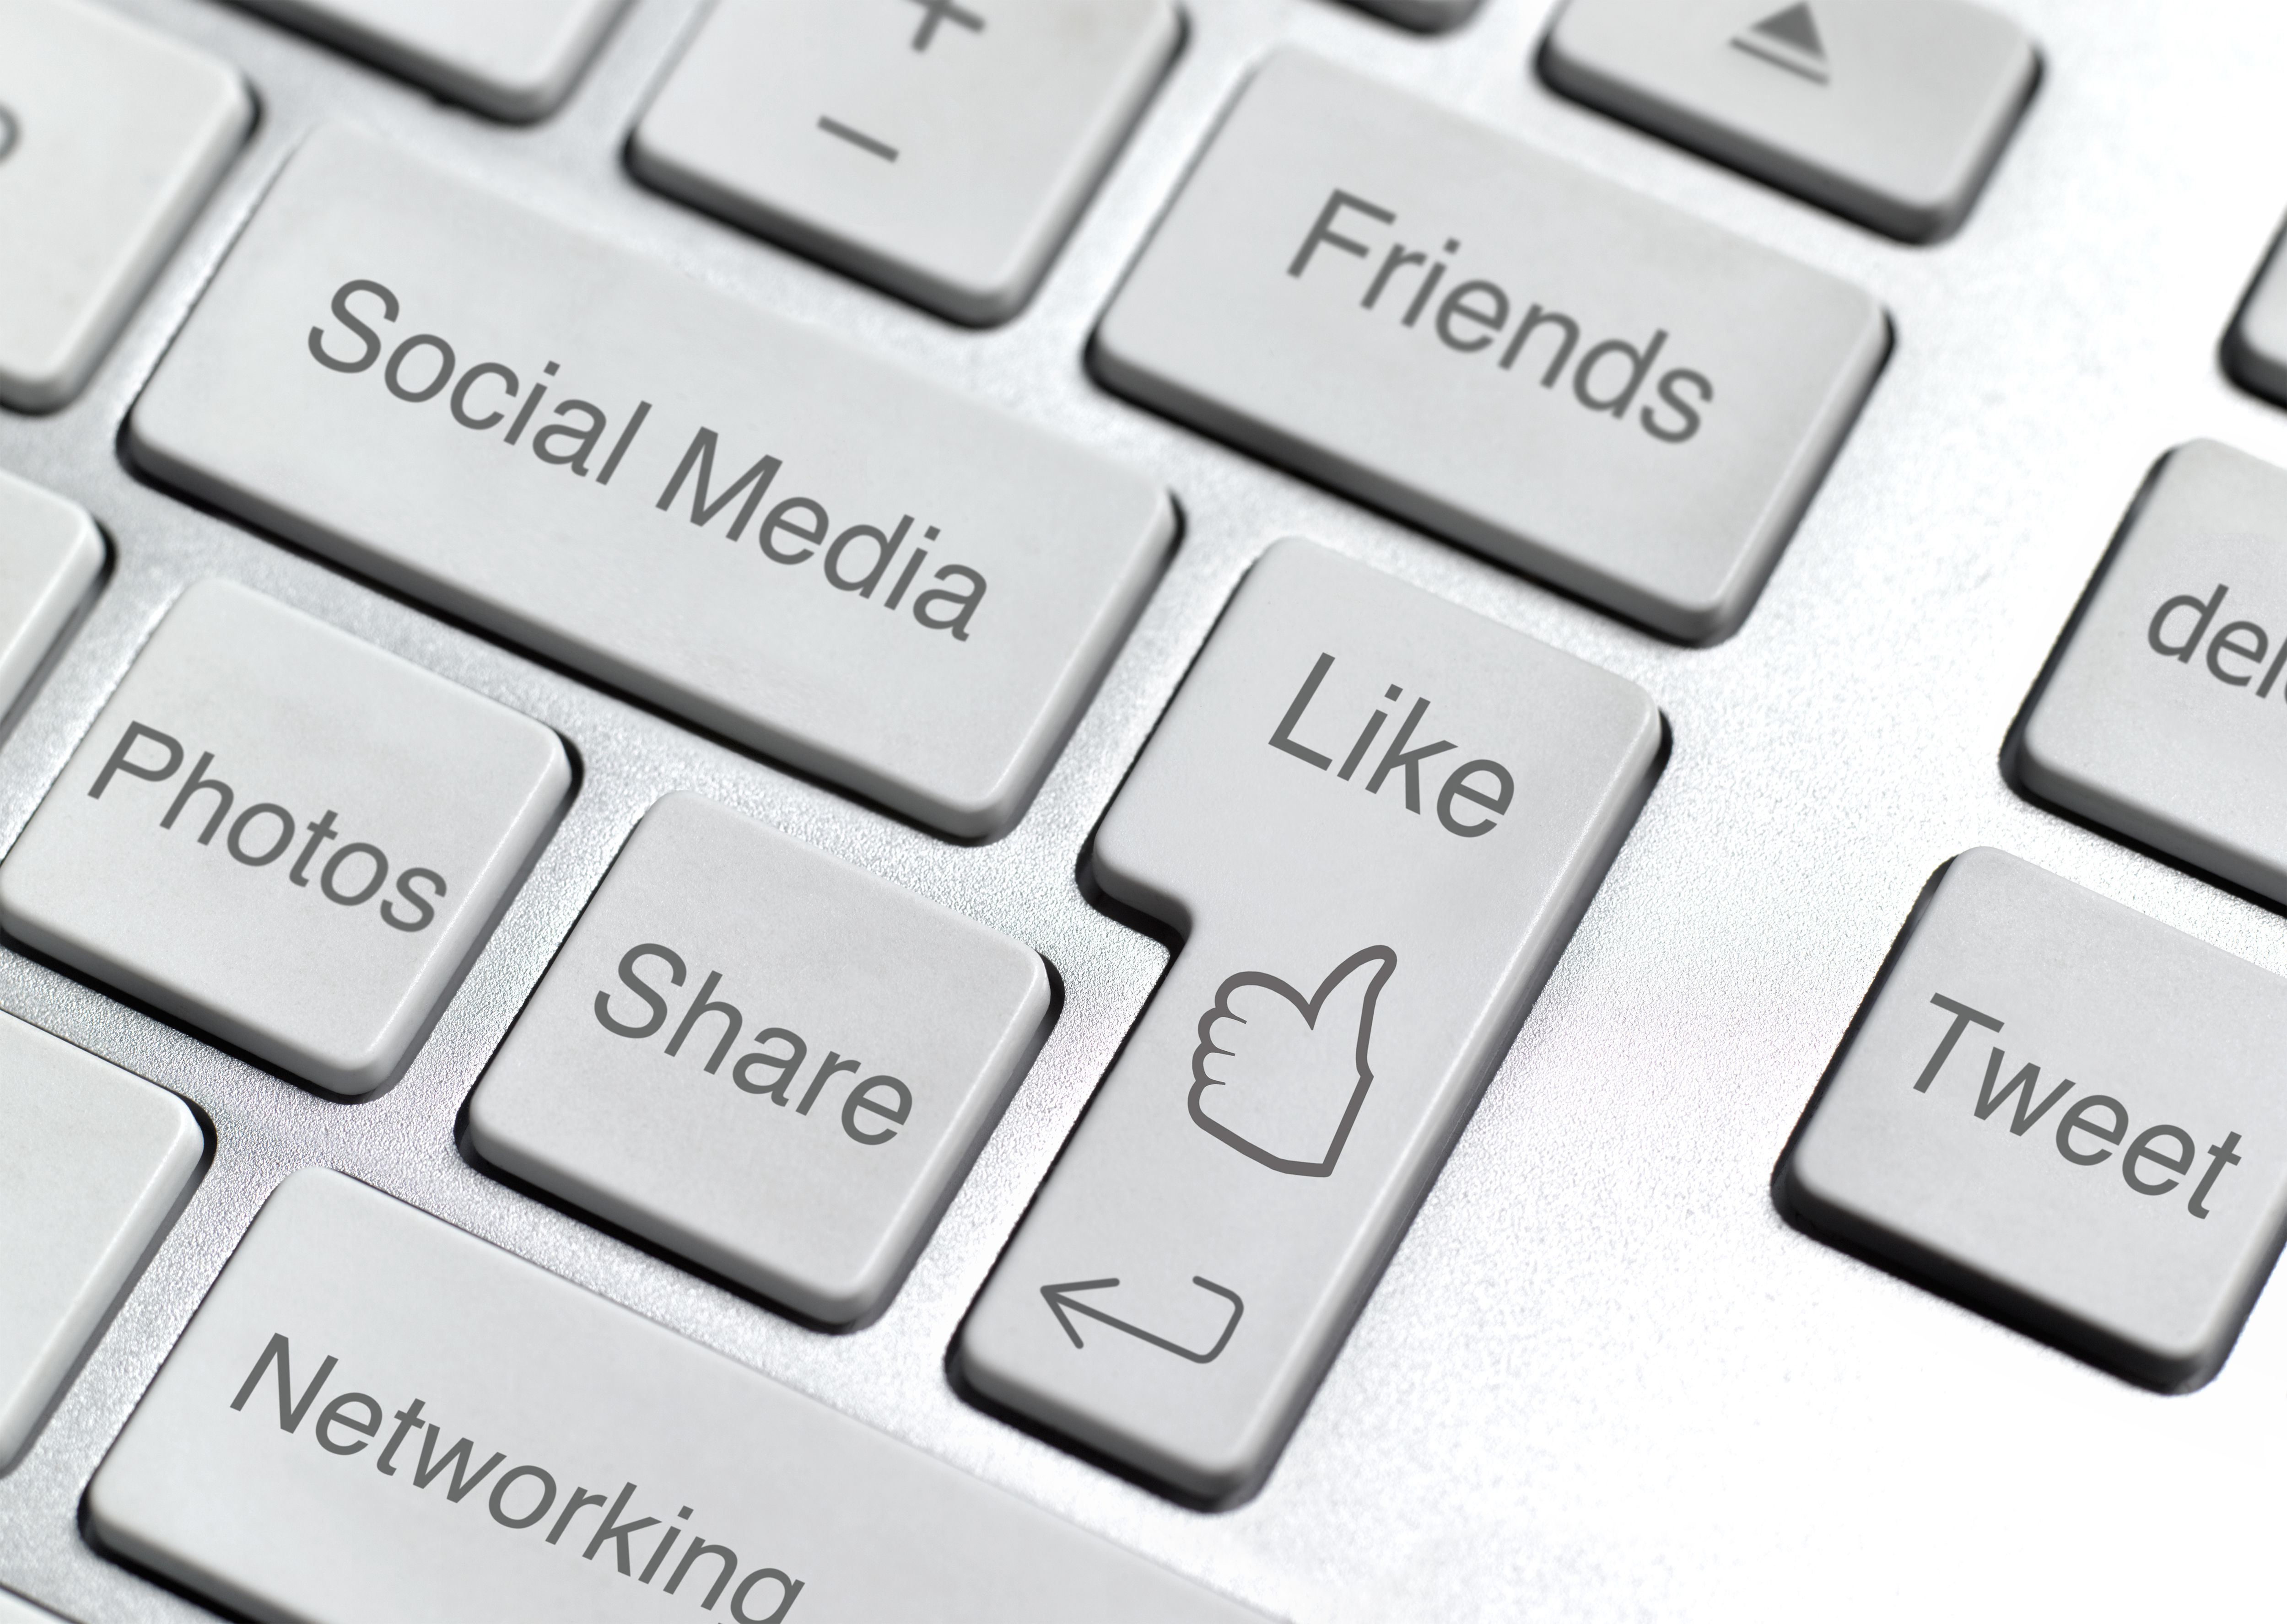 Keyboard with Symbols Used in Social Media Sweepstakes